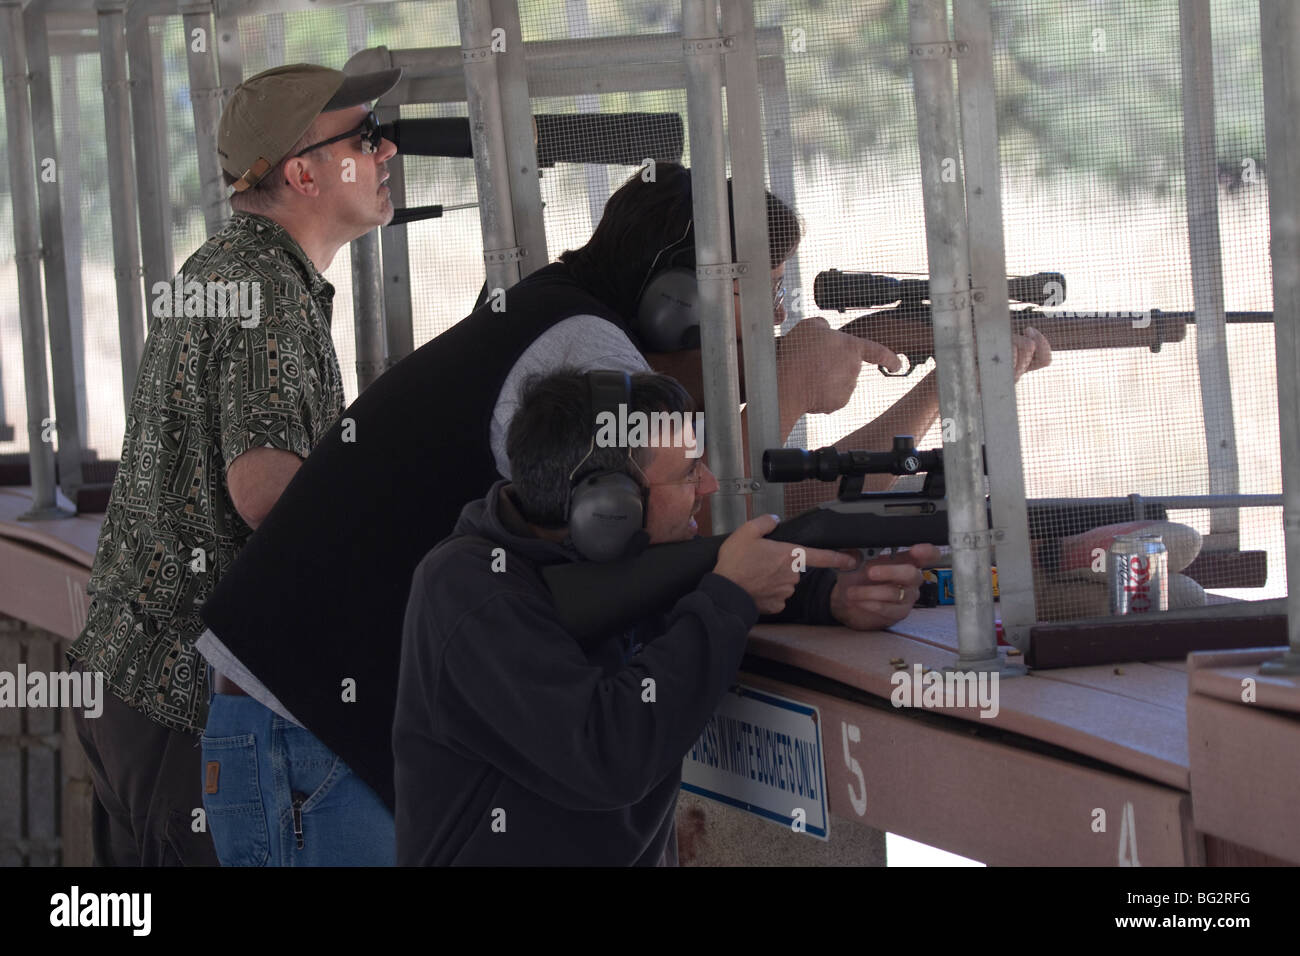 Ruger Stock Photos & Ruger Stock Images - Alamy